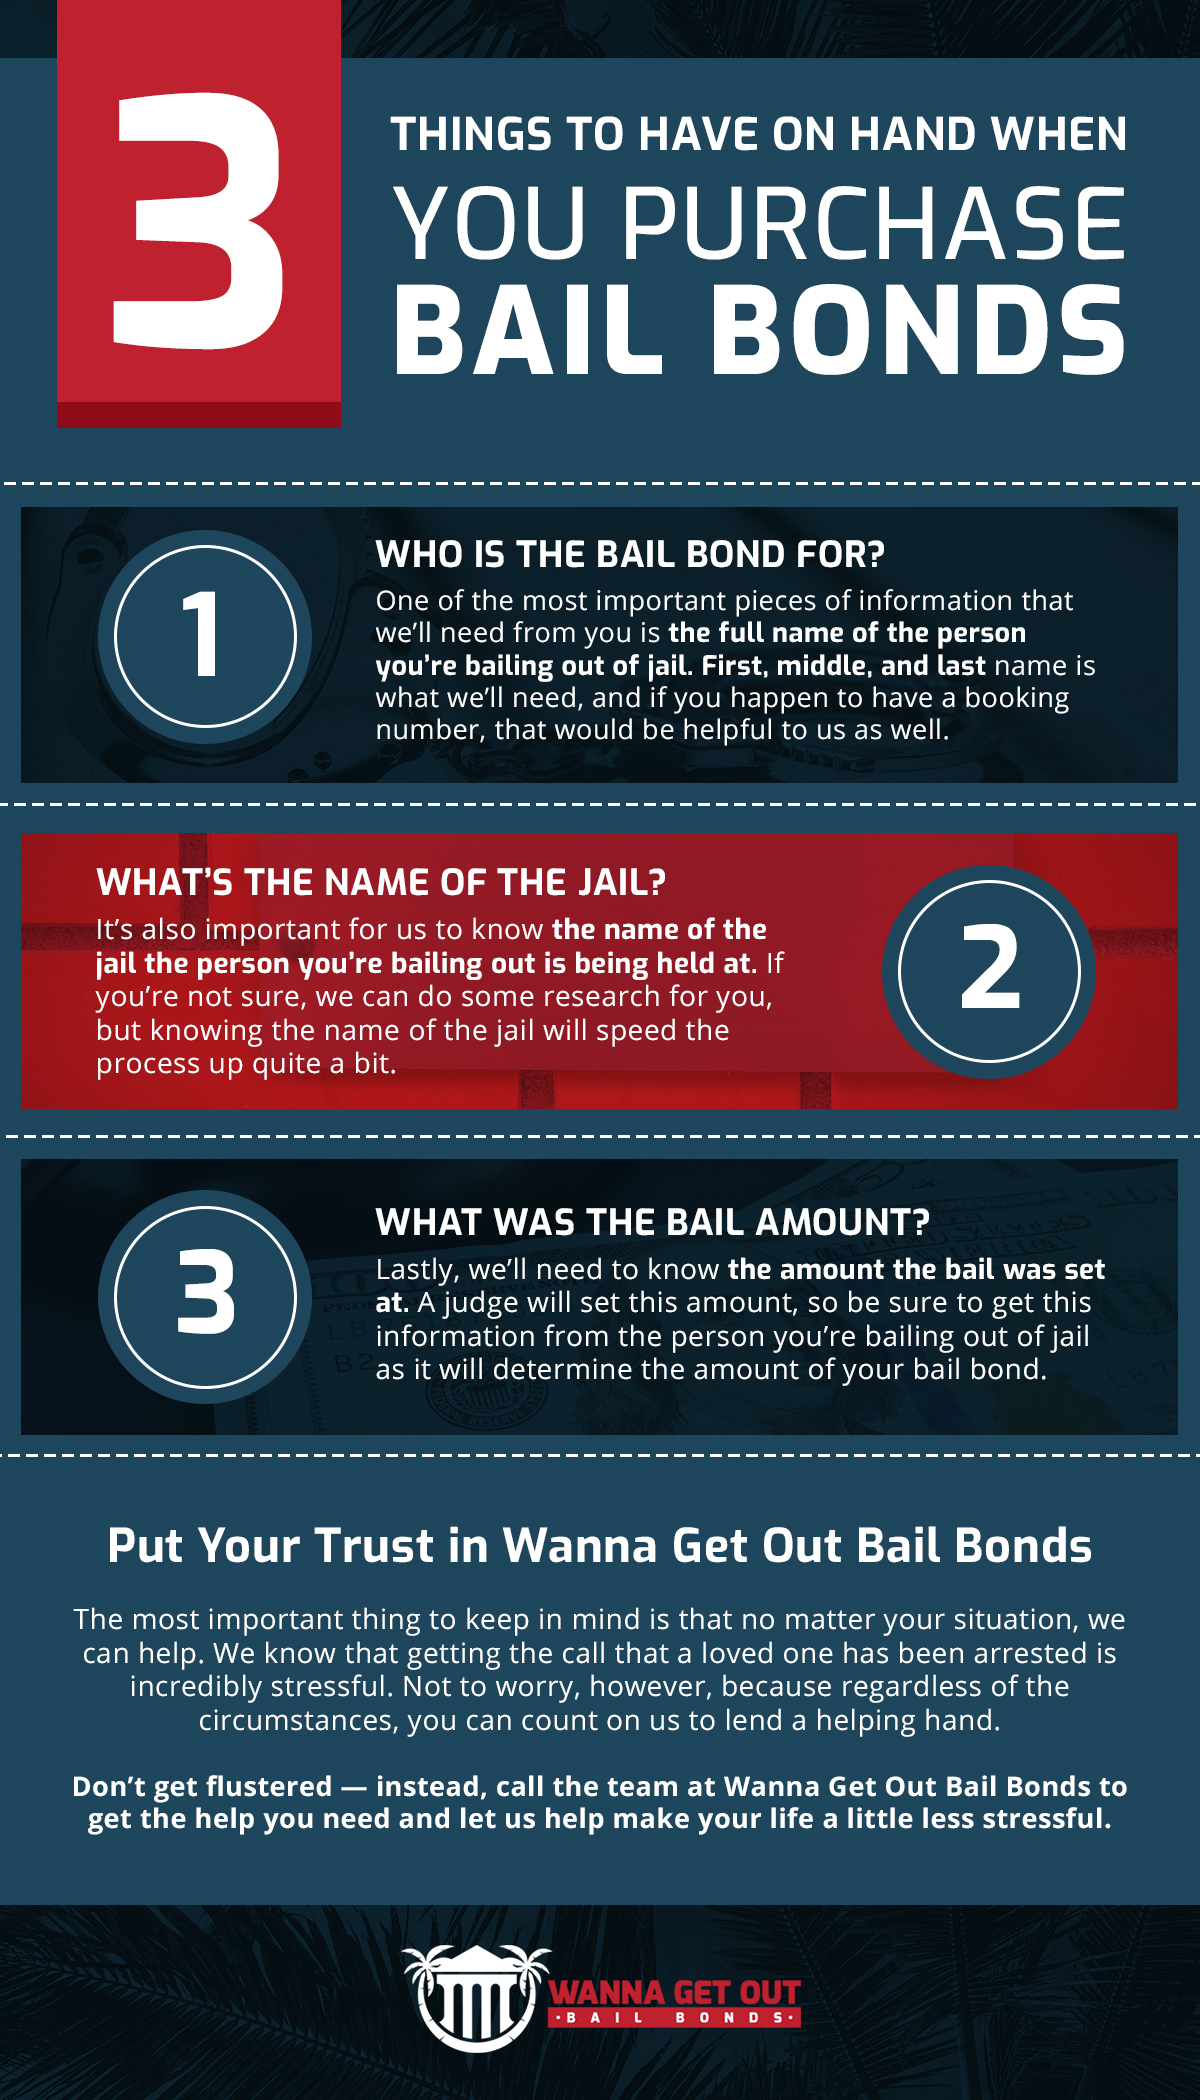 3 Things to Have On Hand When You Purchase Bail Bonds